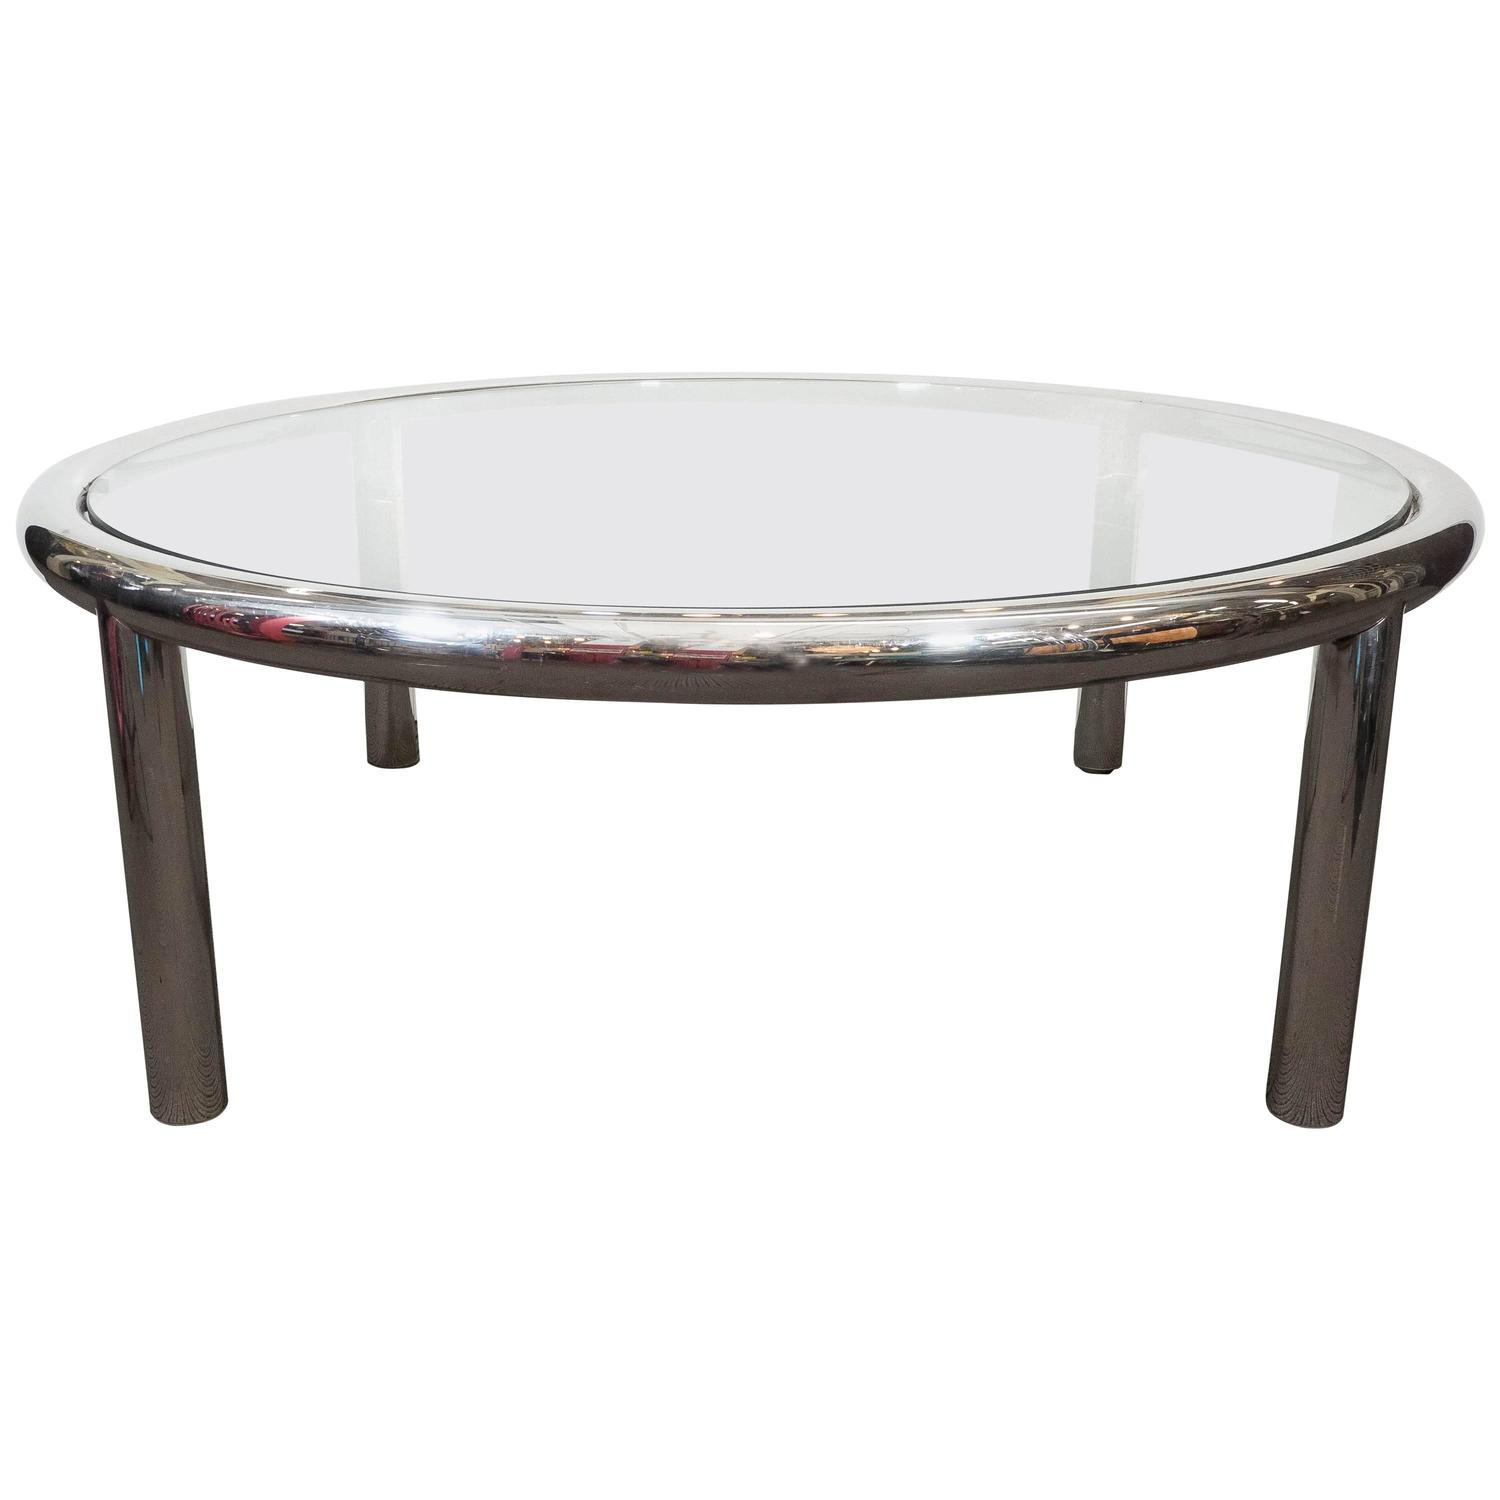 Tubular chrome glass top round coffee table for sale at for Circular glass top coffee table